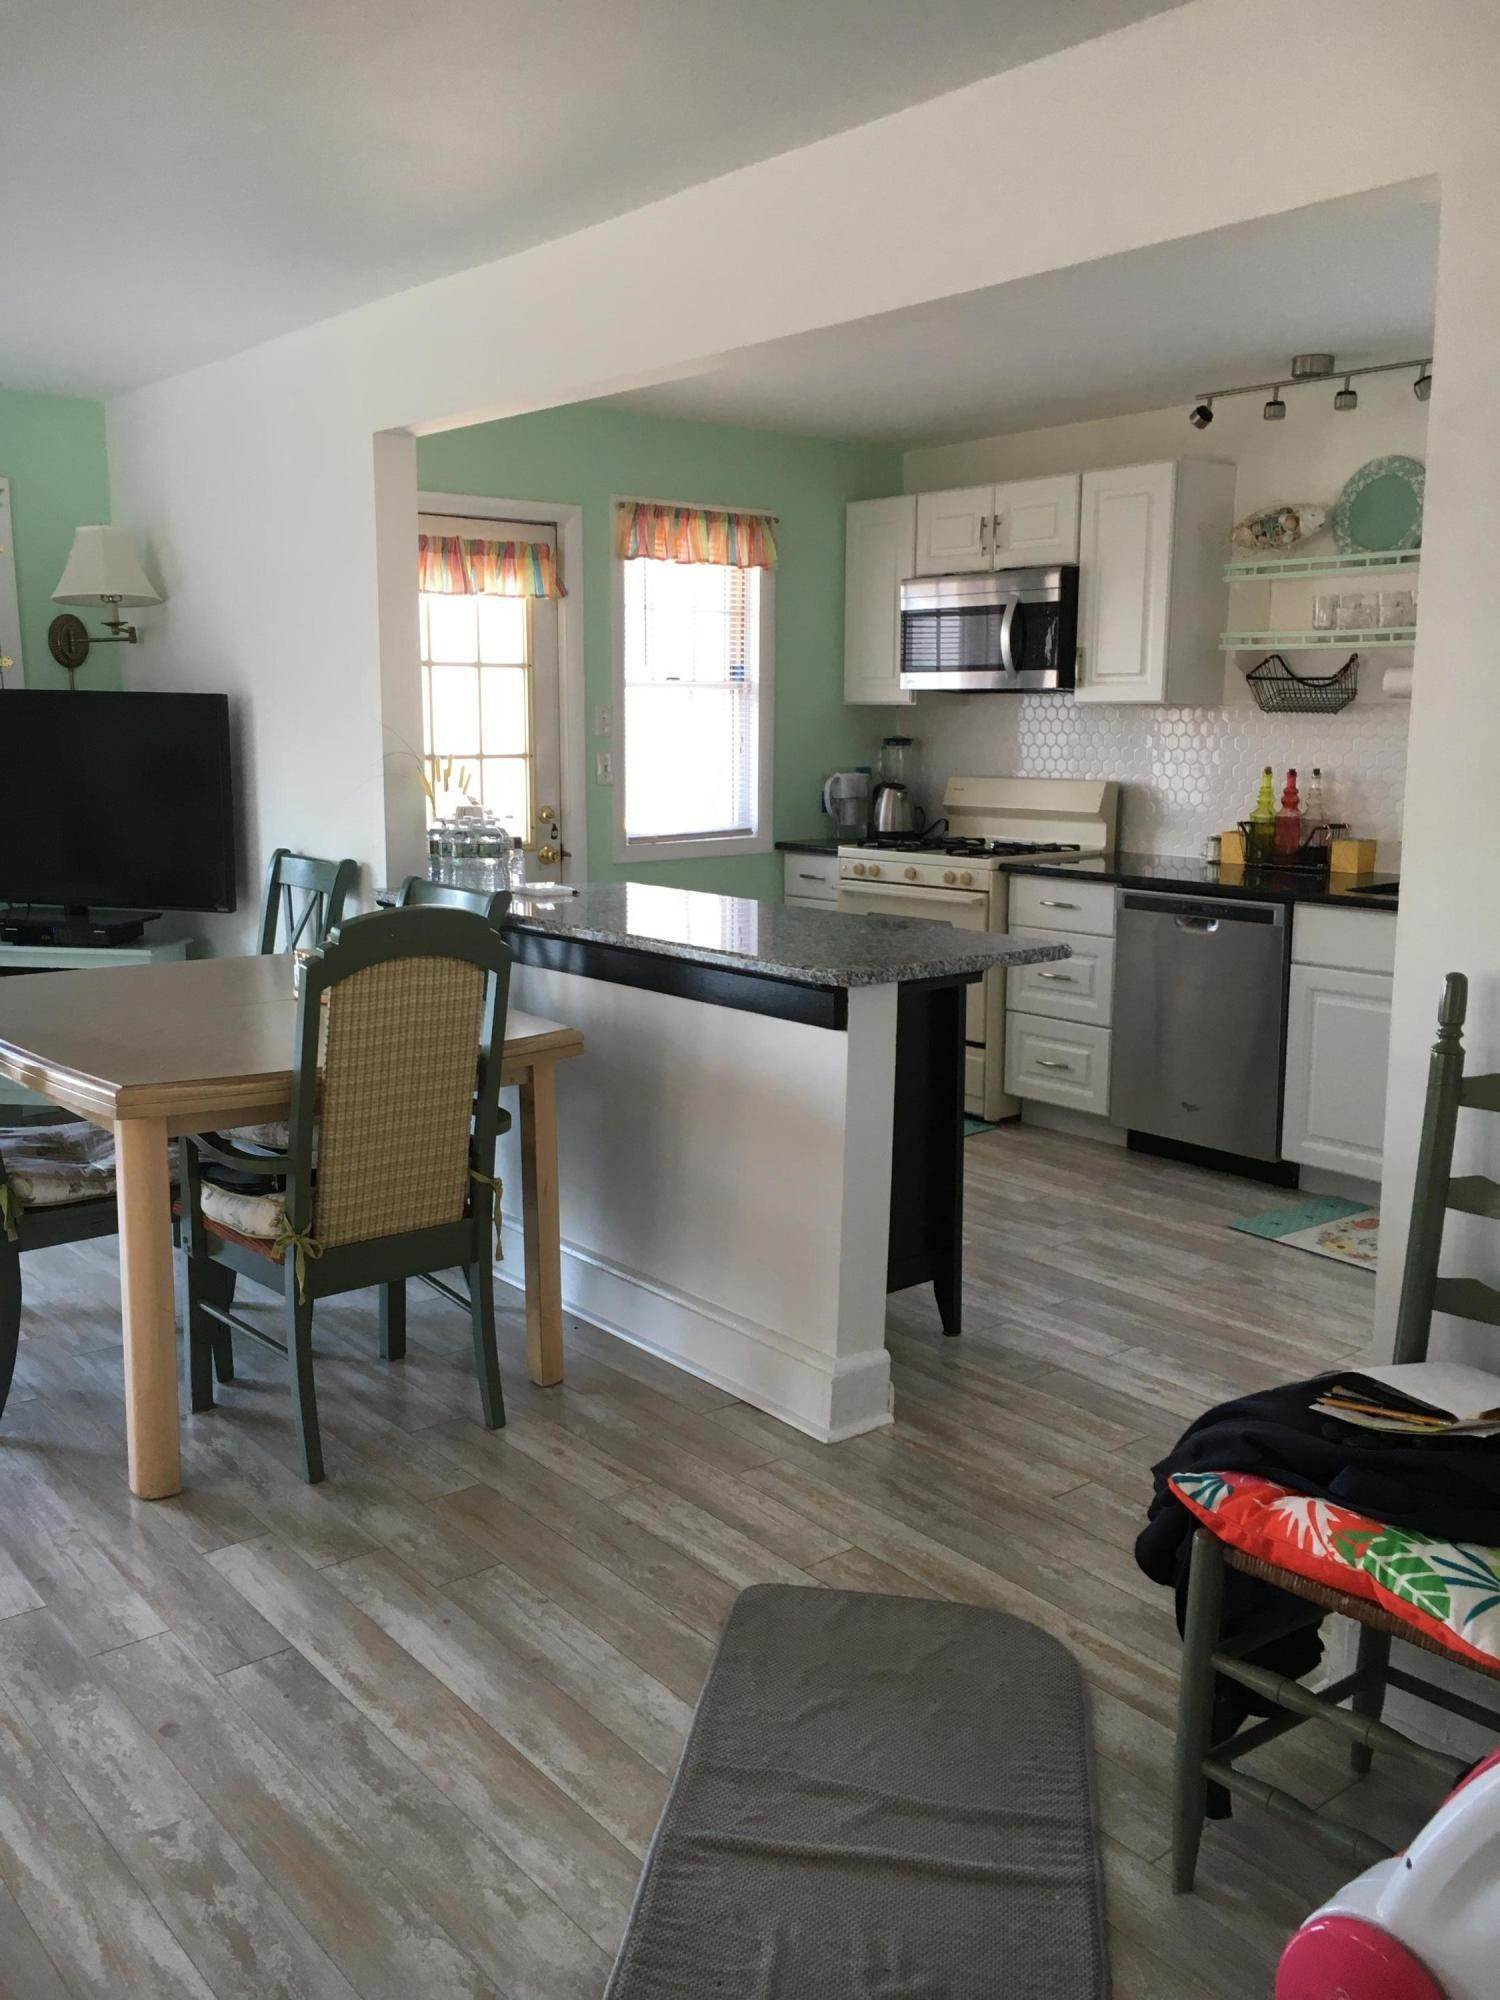 5. Single Family Homes for Sale at 29 Dupont Avenue Seaside Heights, New Jersey 08751 United States